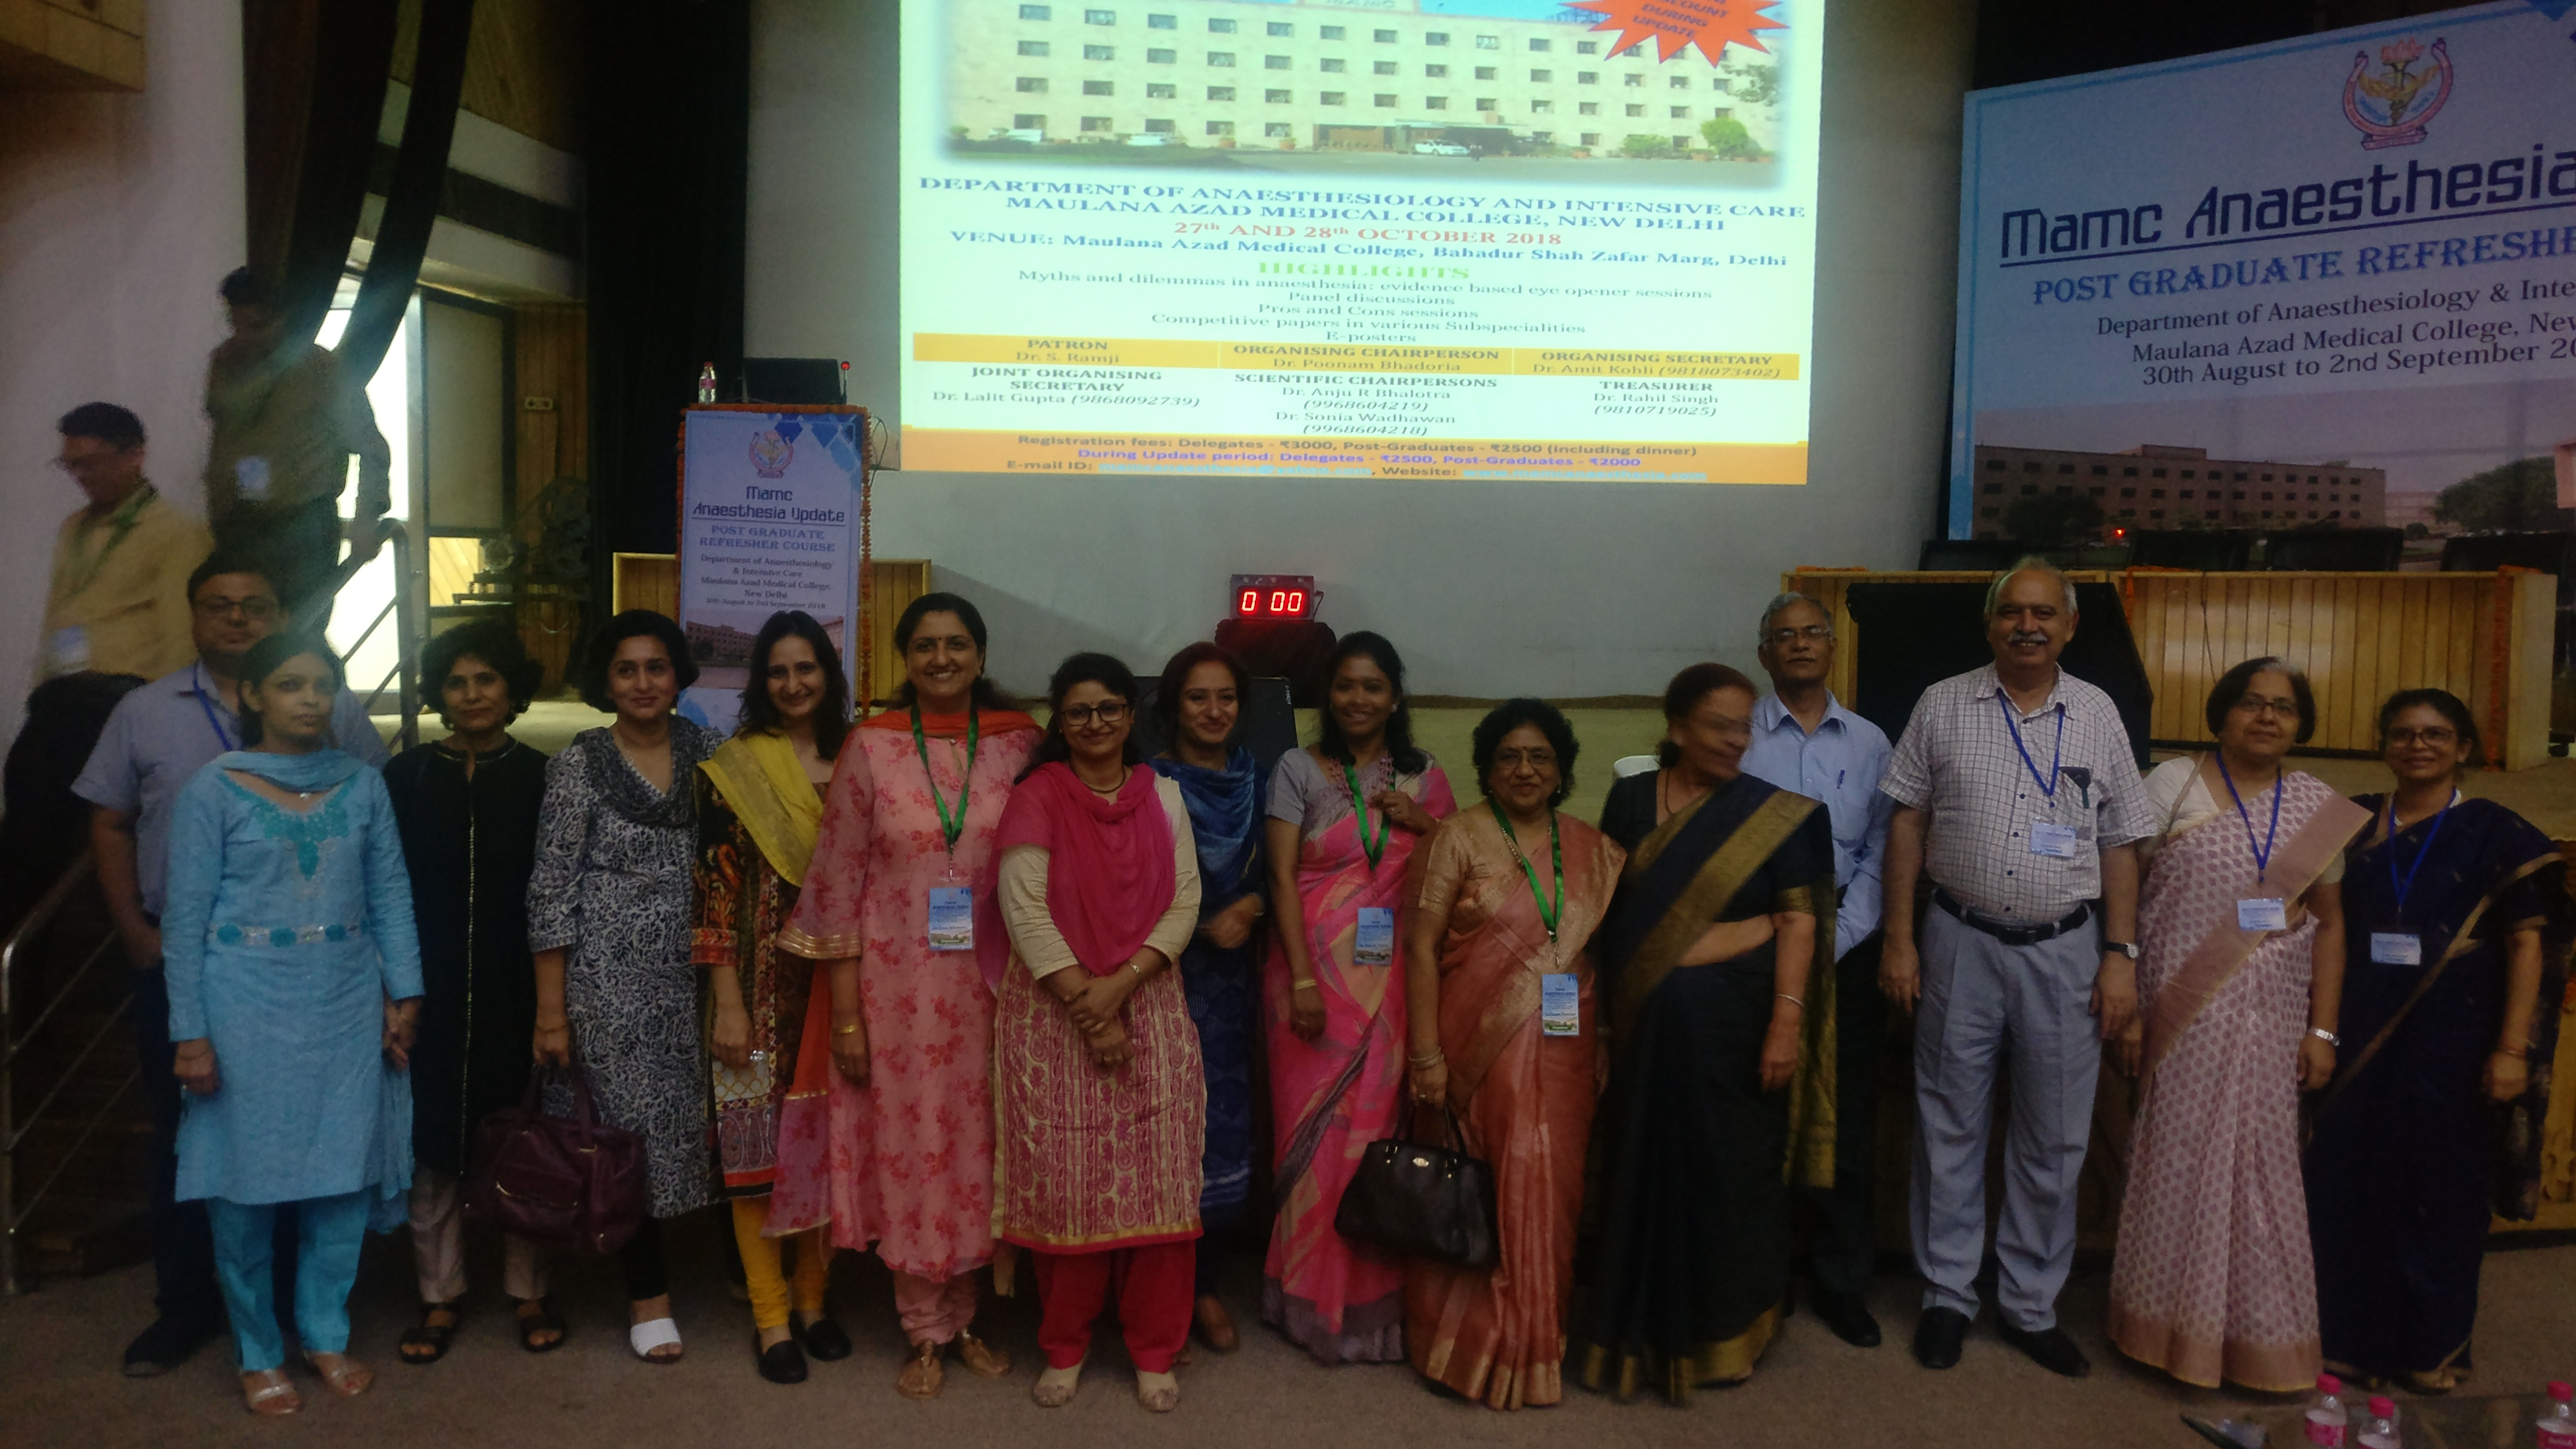 MAMC Anaesthesia Update – P G  Refresher Course (28th August - 1st